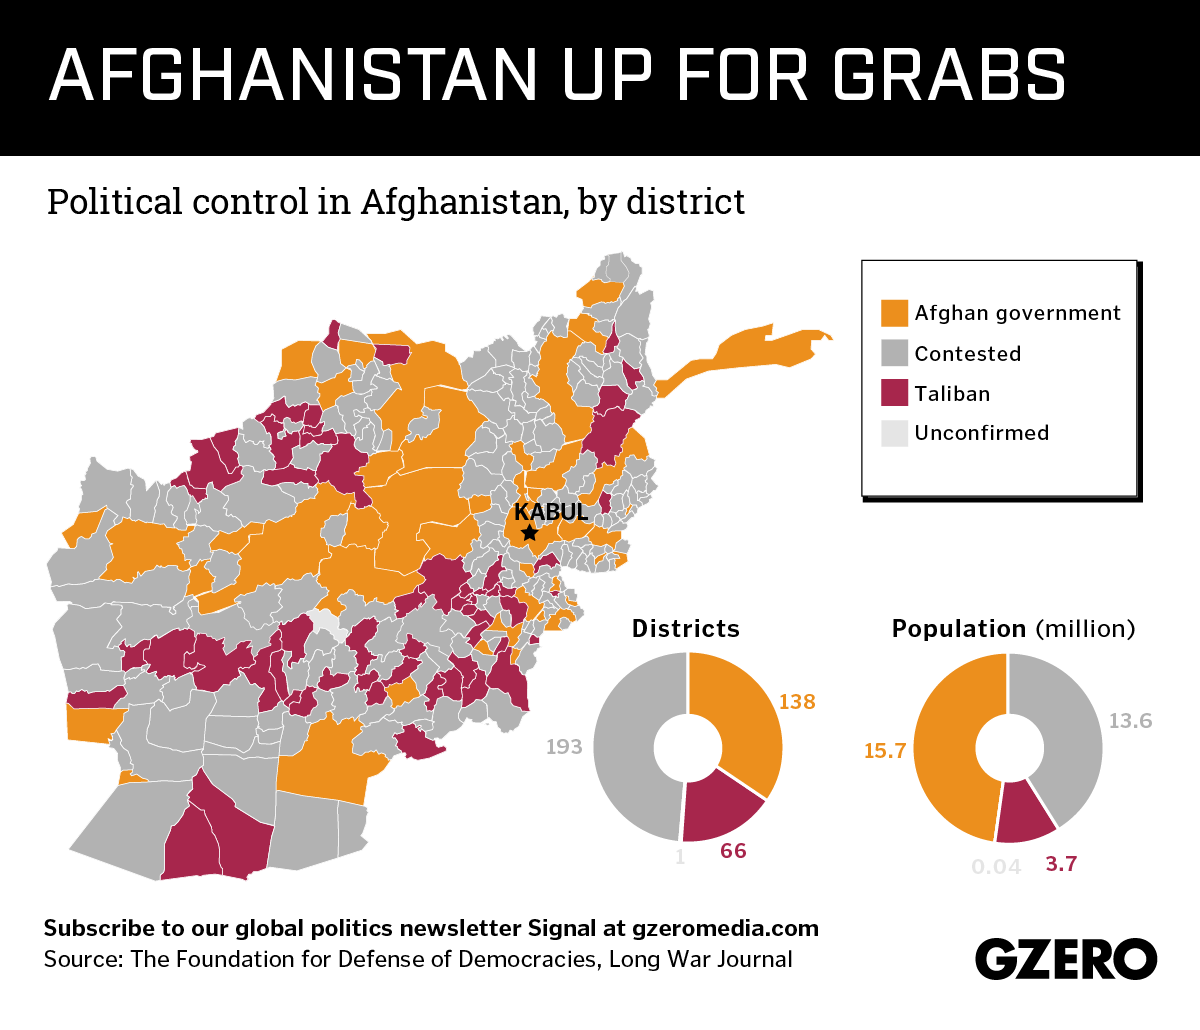 Graphic Truth: Afghanistan Up For Grabs